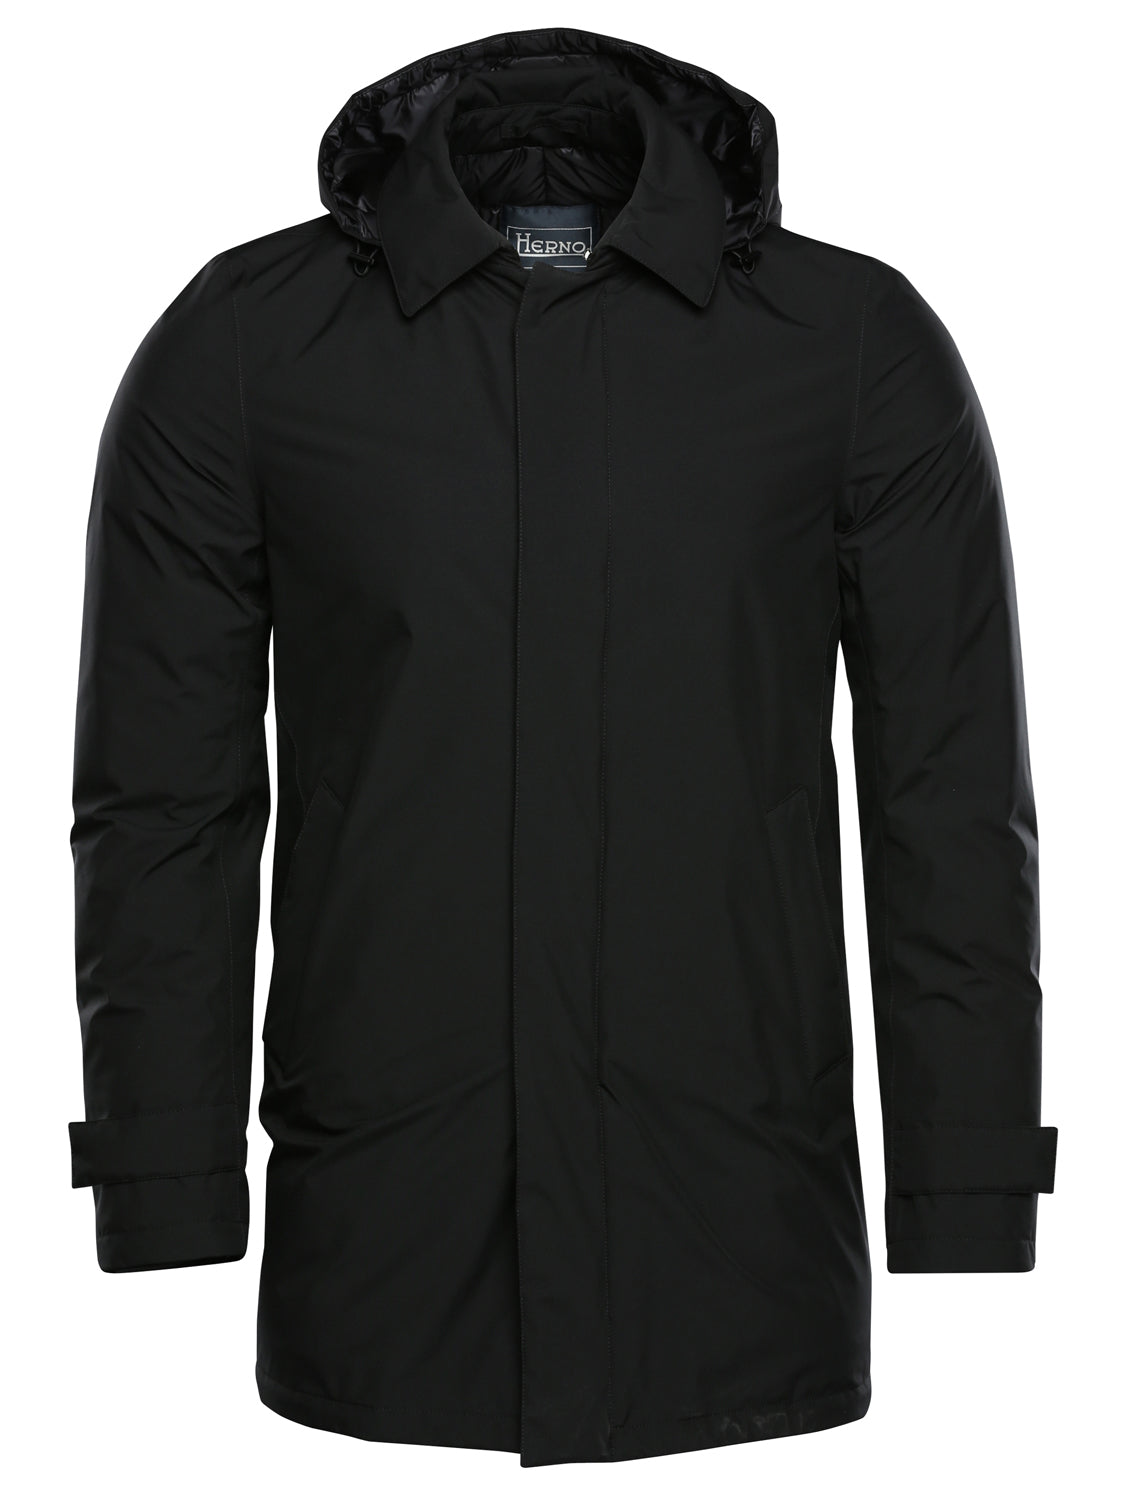 Herno Laminar Trench Coat (Black) - Union 22